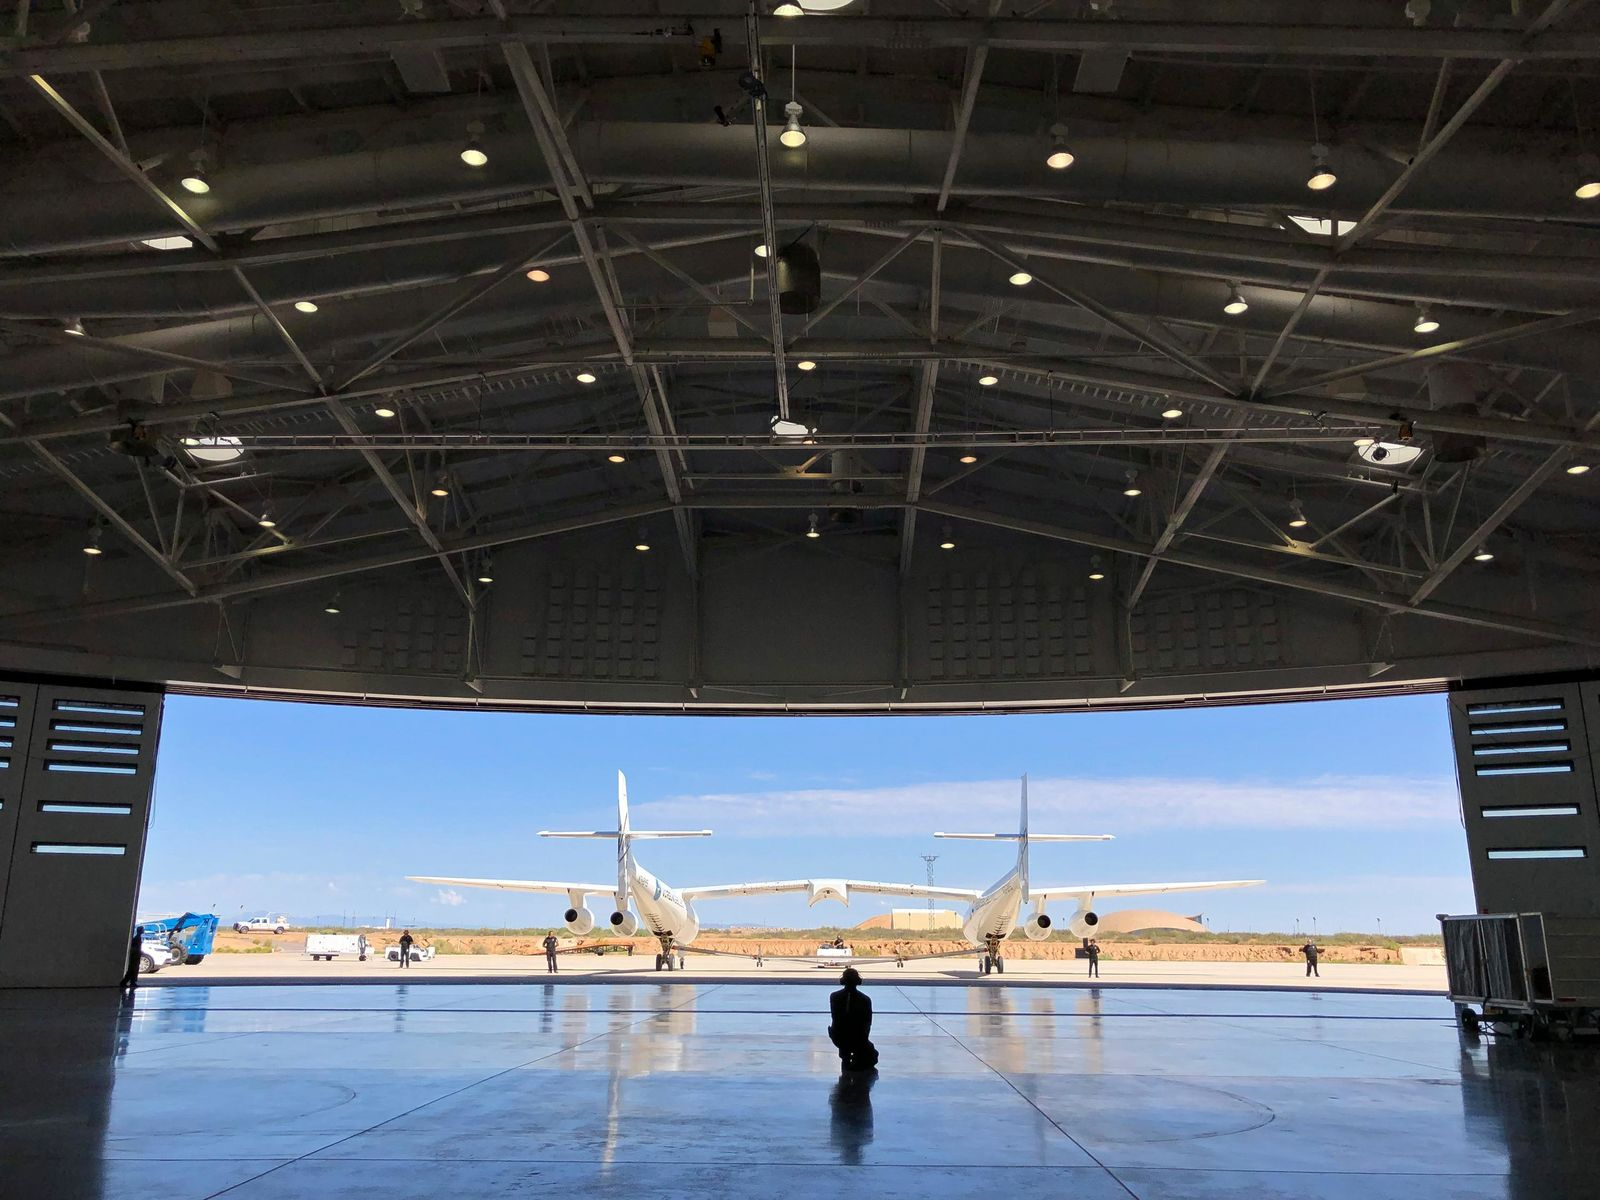 "In this Aug. 15, 2019 file photo, Virgin Galactic ground crew guide the company's carrier plane into the hangar at Spaceport America following a test flight over the desert near Upham, New Mexico. Virgin Galactic is on the verge of making more history in 2020 following an ""incredible"" year of progress, the chief executive of billionaire Richard Branson's space tourism venture said Thursday. (AP Photo/Susan Montoya Bryan, File)"